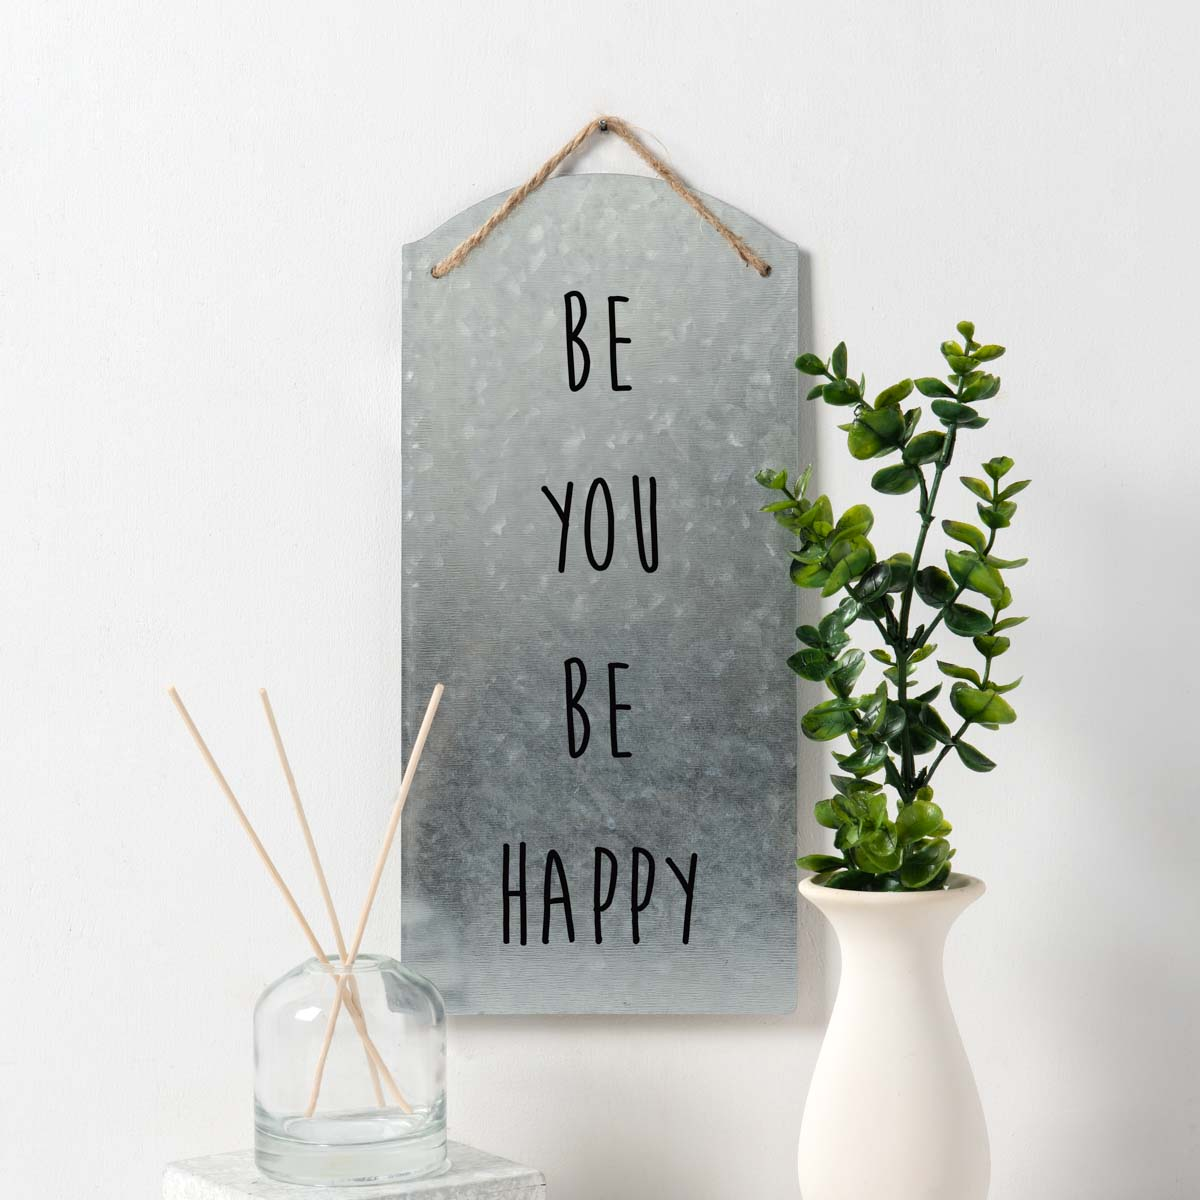 Be You Stenciled Tin Sign DIY